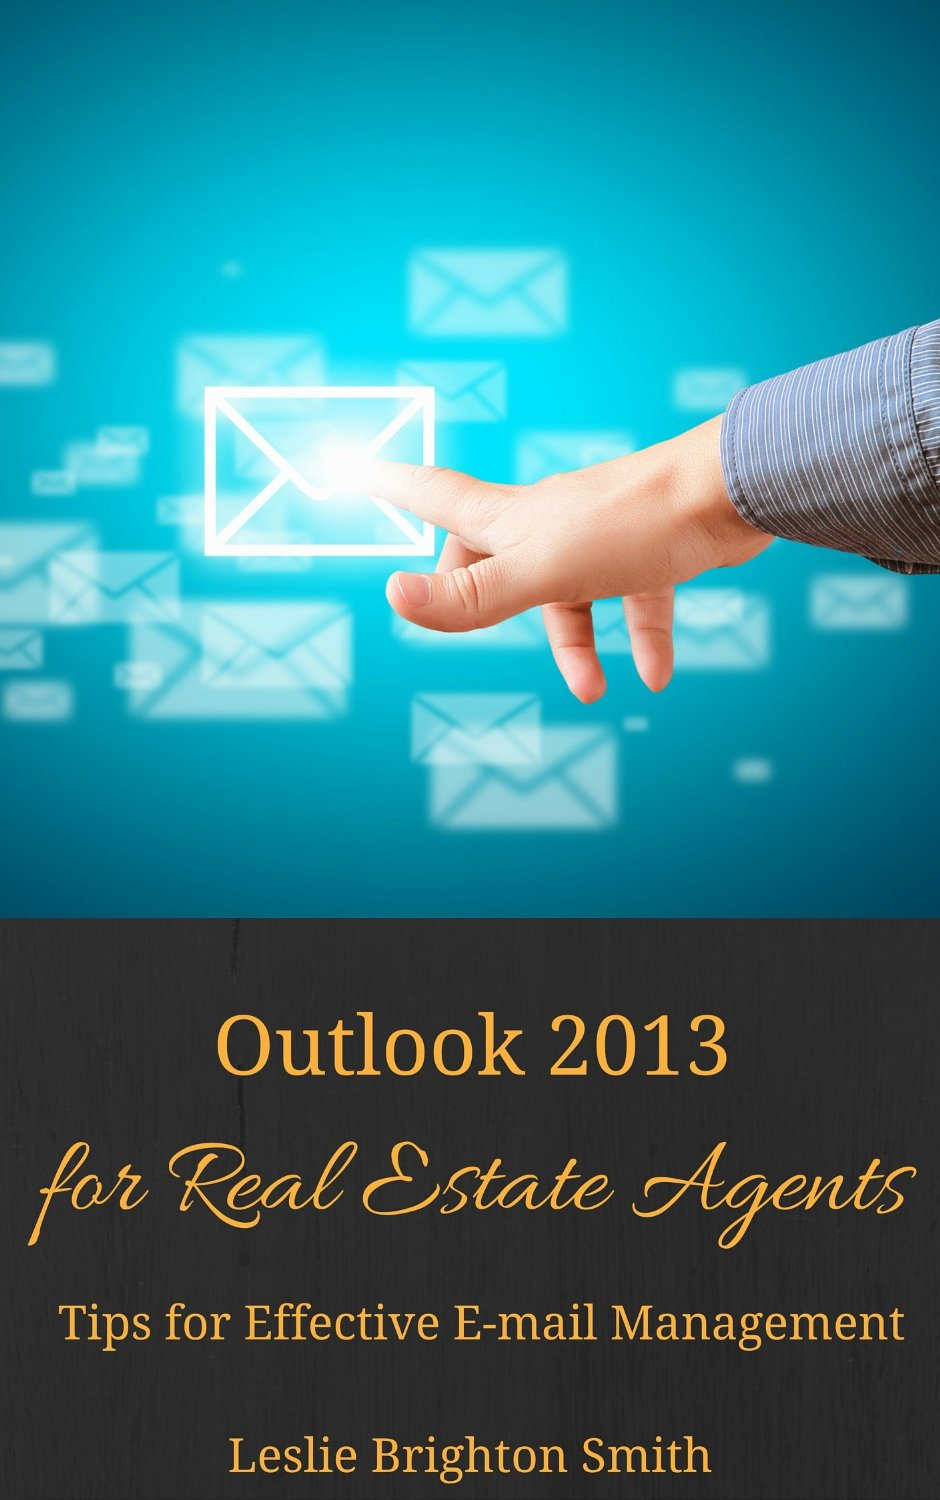 Outlook 2013 for Real Estate Agents: Tips for Effective E-mail Management free download